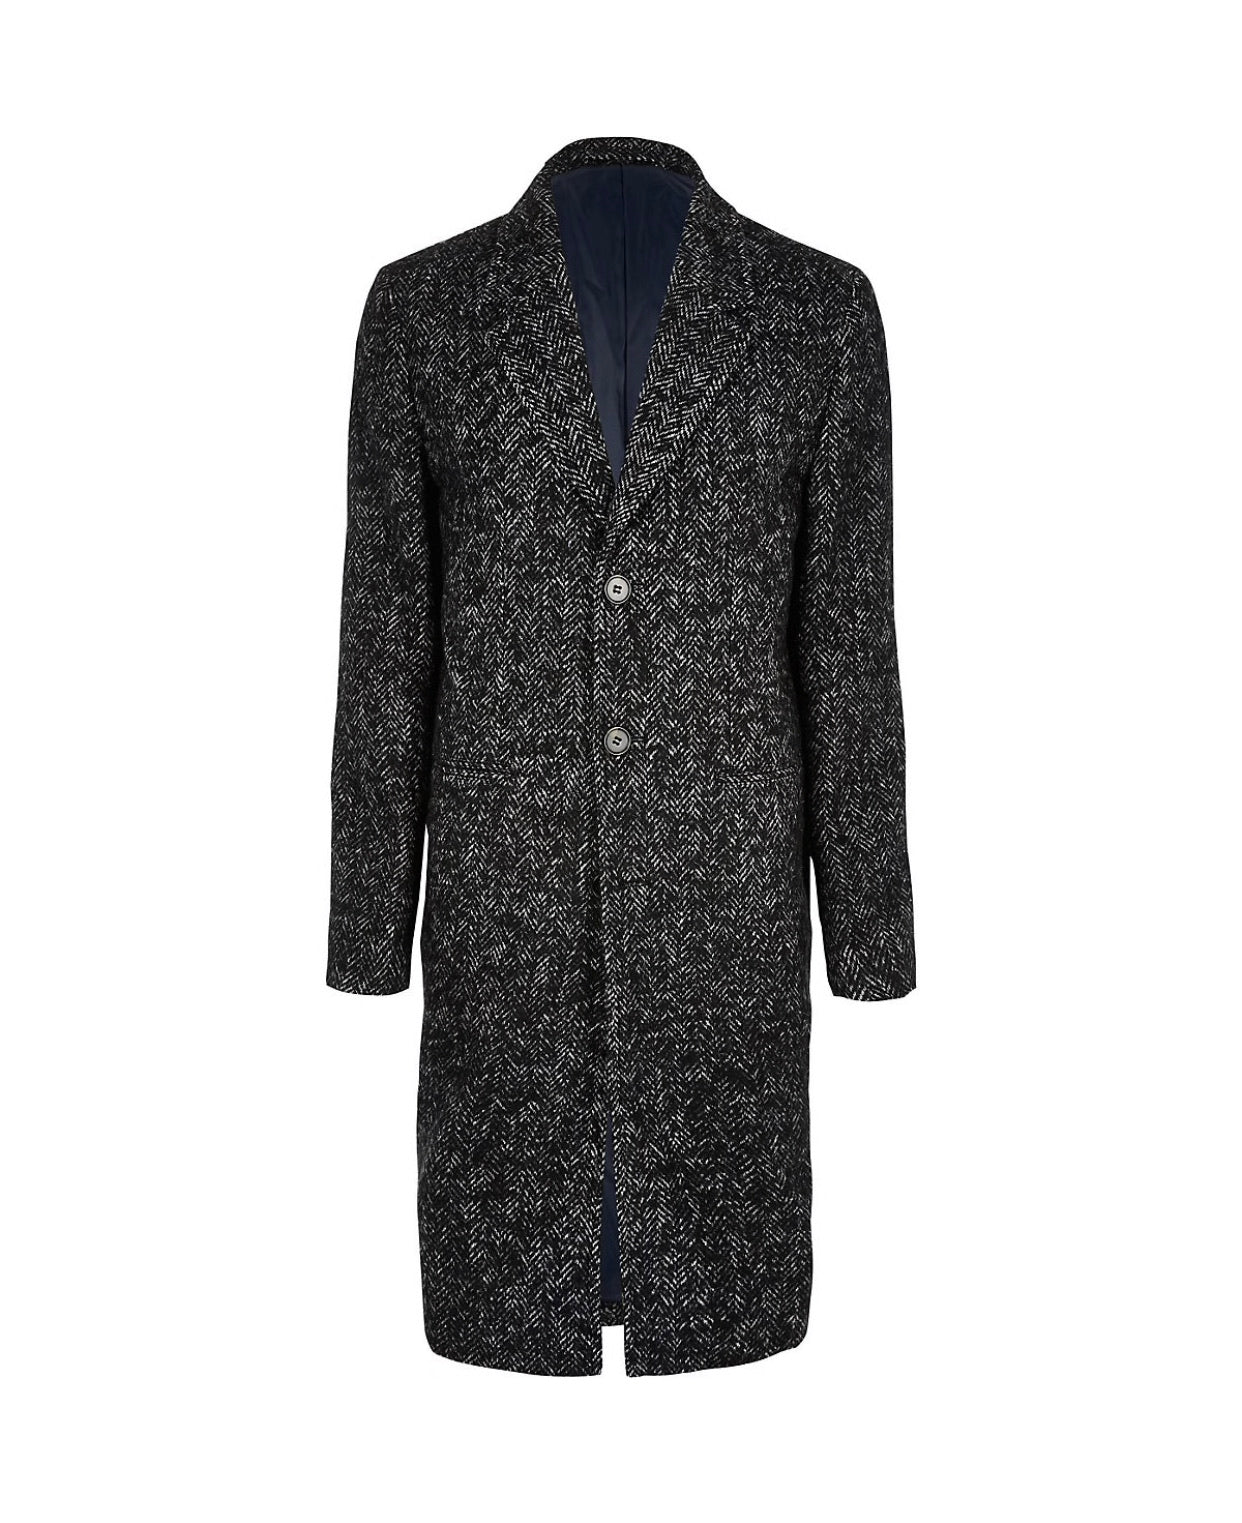 The Wool Overcoat - Up to Size 52(XXXL)